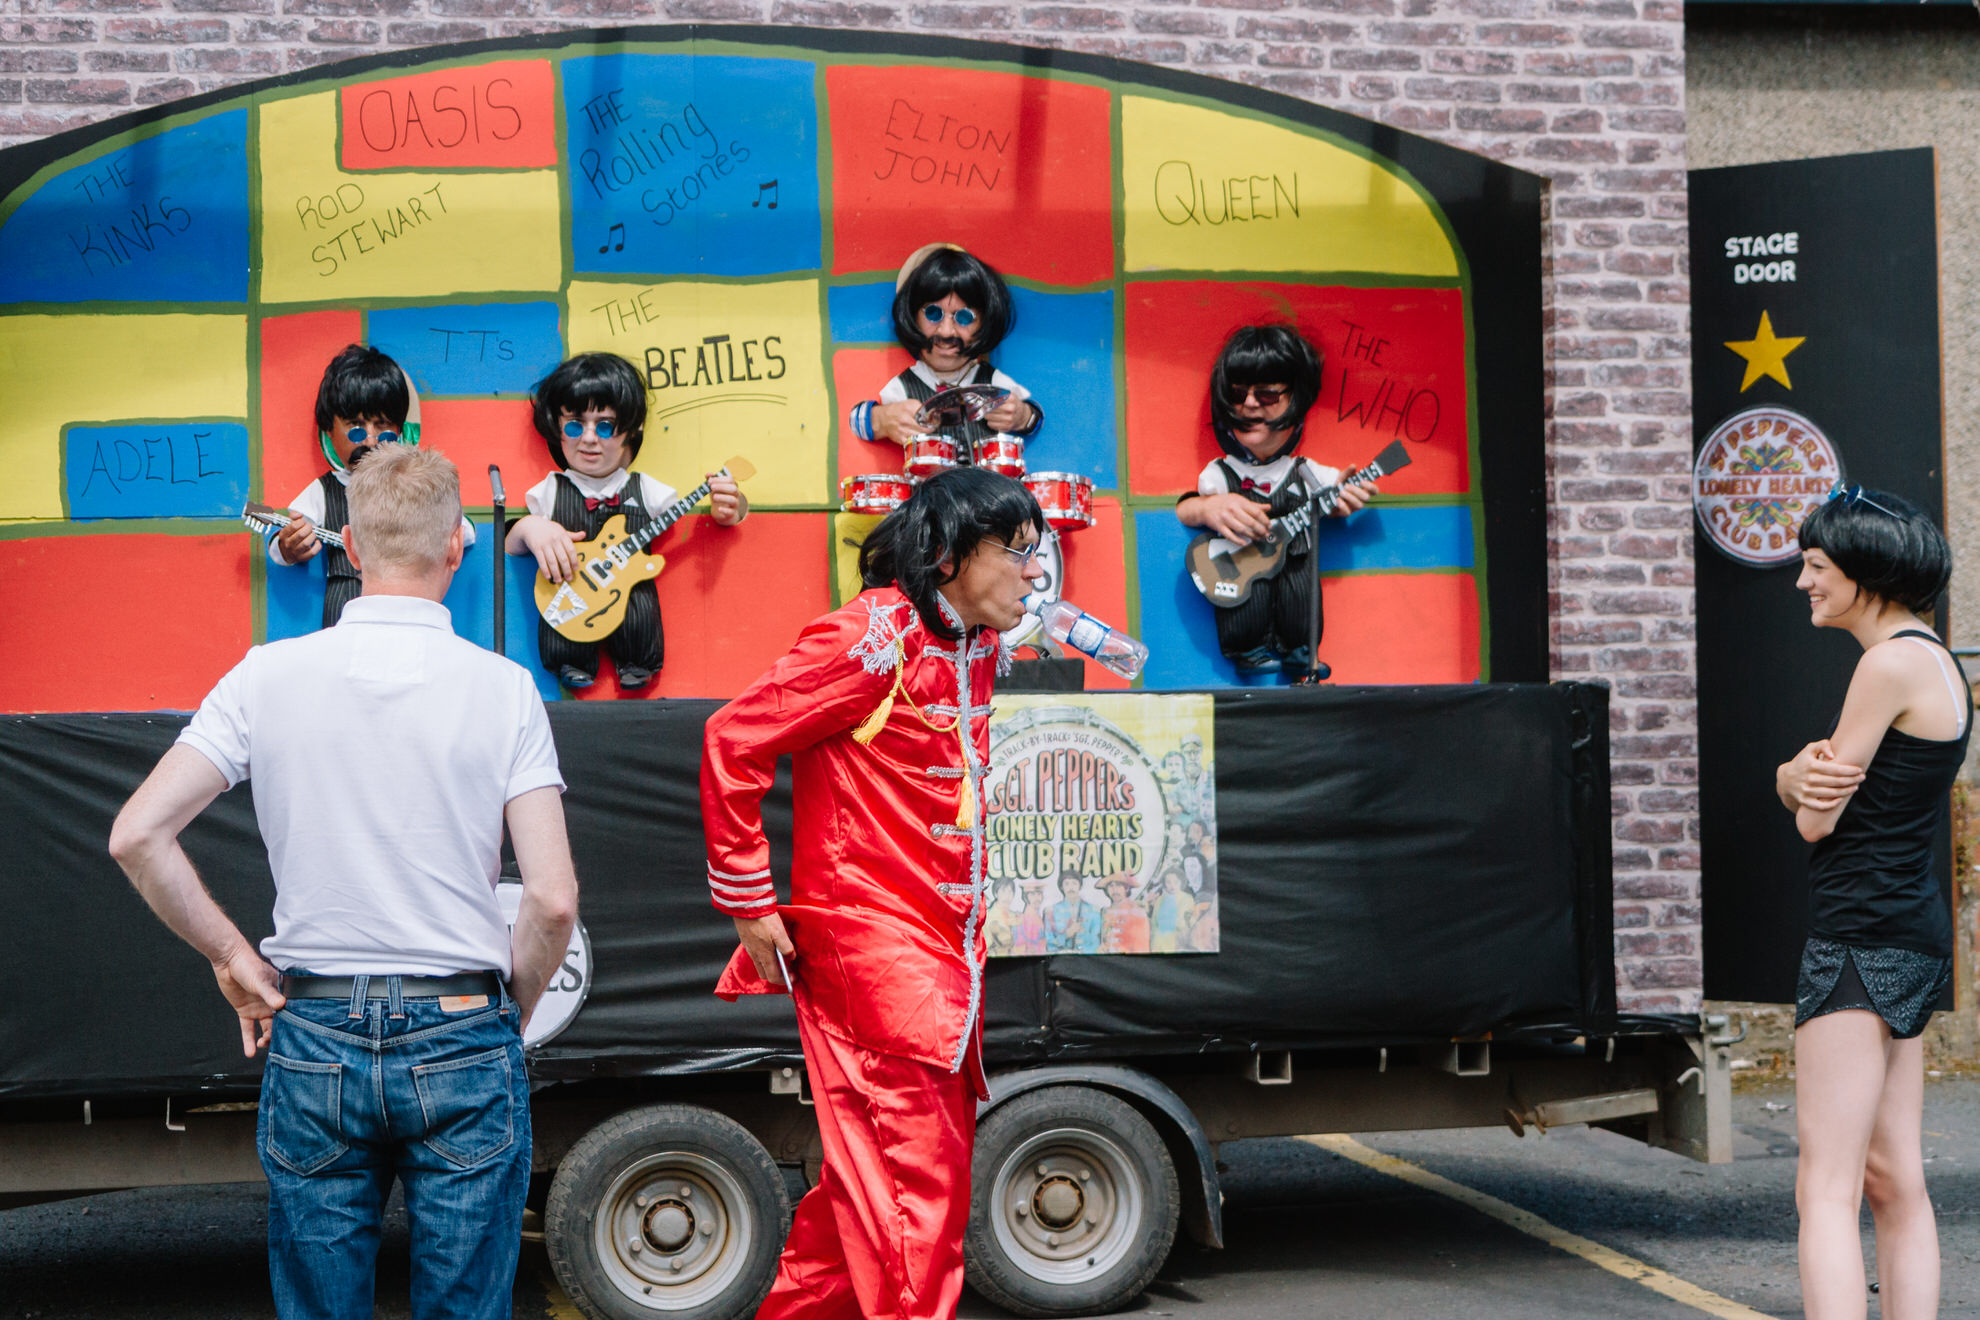 Participants of Guid Nychburris carnival Beetles float